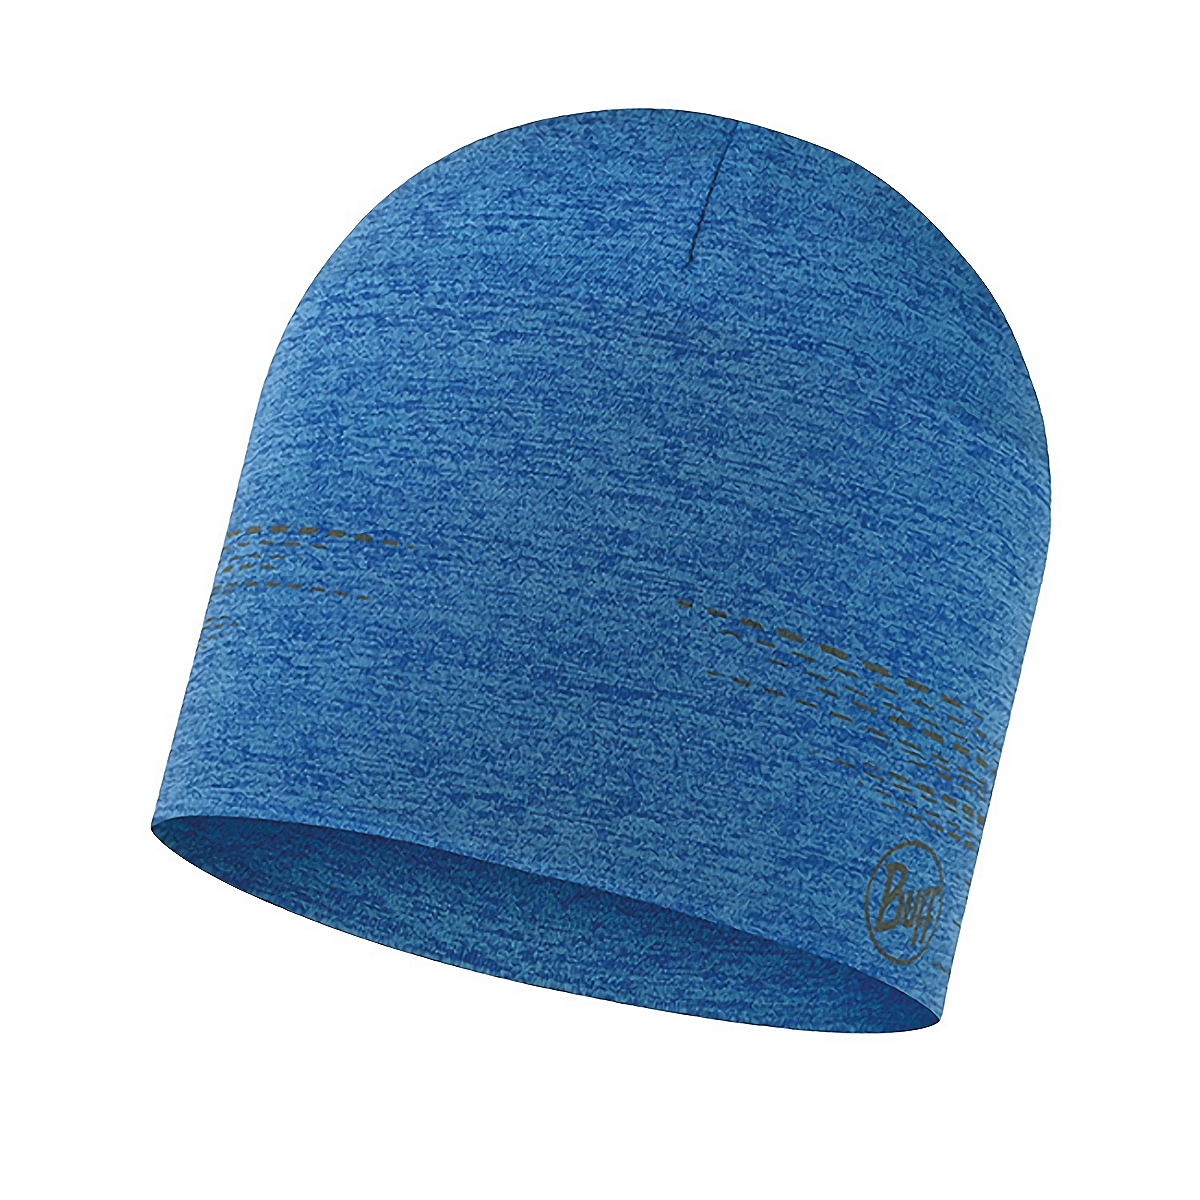 Buff Dryflx Hat - Color: Olympian Blue, Olympian Blue, large, image 1